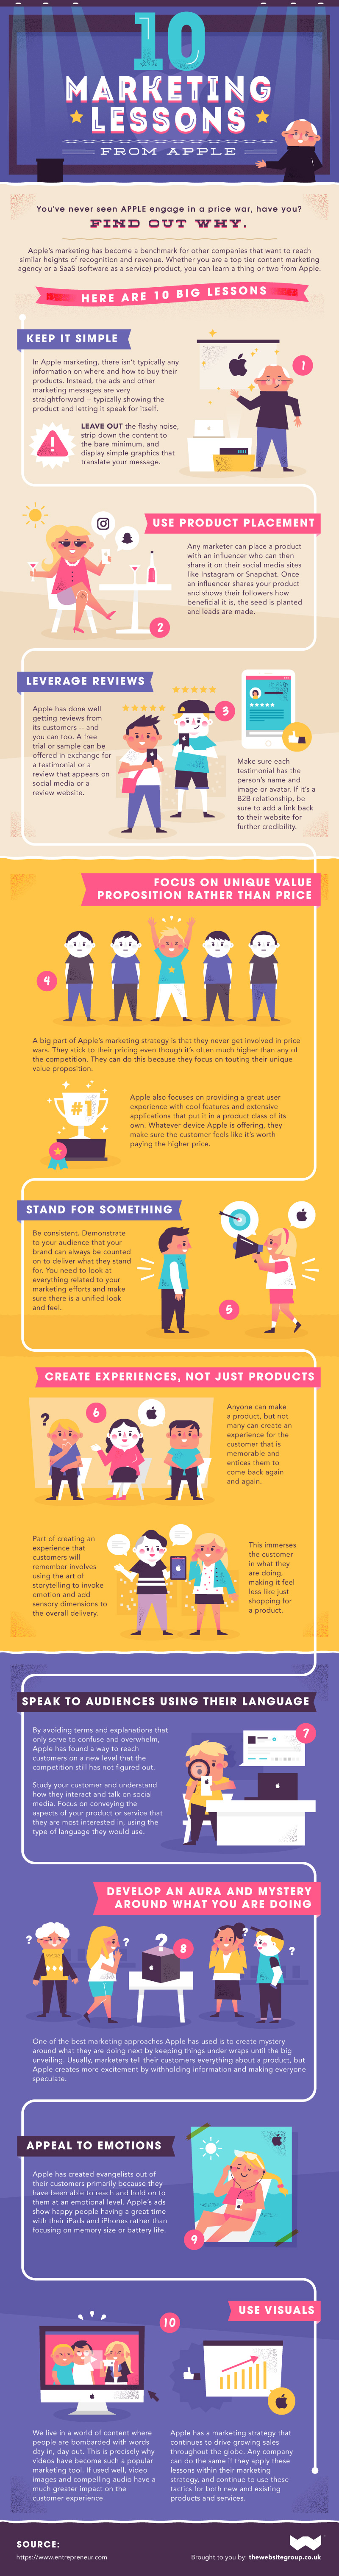 10-Marketing-Lessons-from-Apple-Infographic_Check out The Website Group's infographic that highlights 10 tried-and-tested marketing lessons from Apple you can apply to your marketing strategies today!